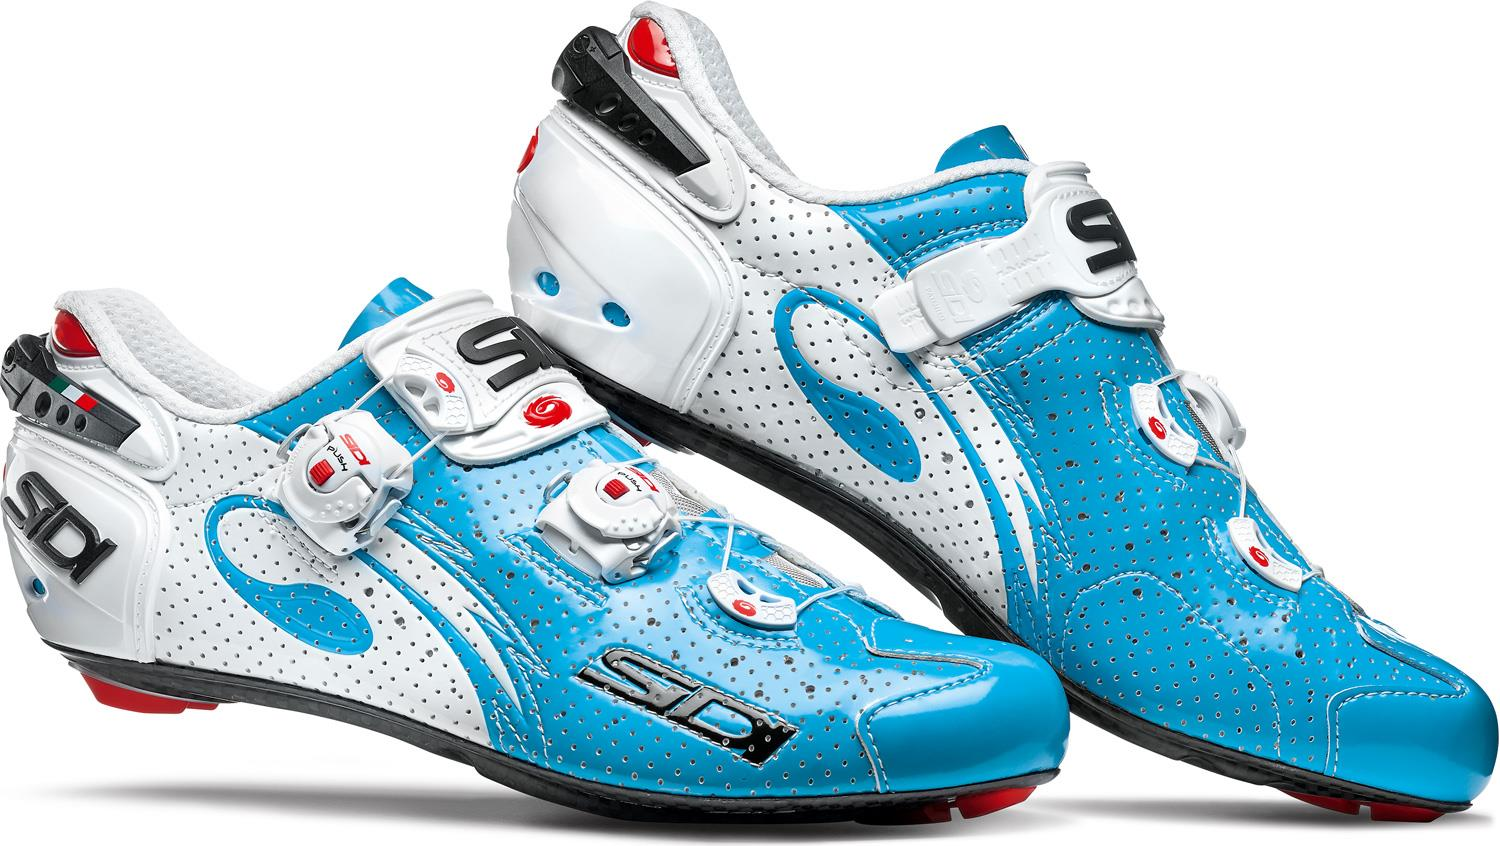 Sidi Wire Carbon Air Vernice Road Cycling Shoe